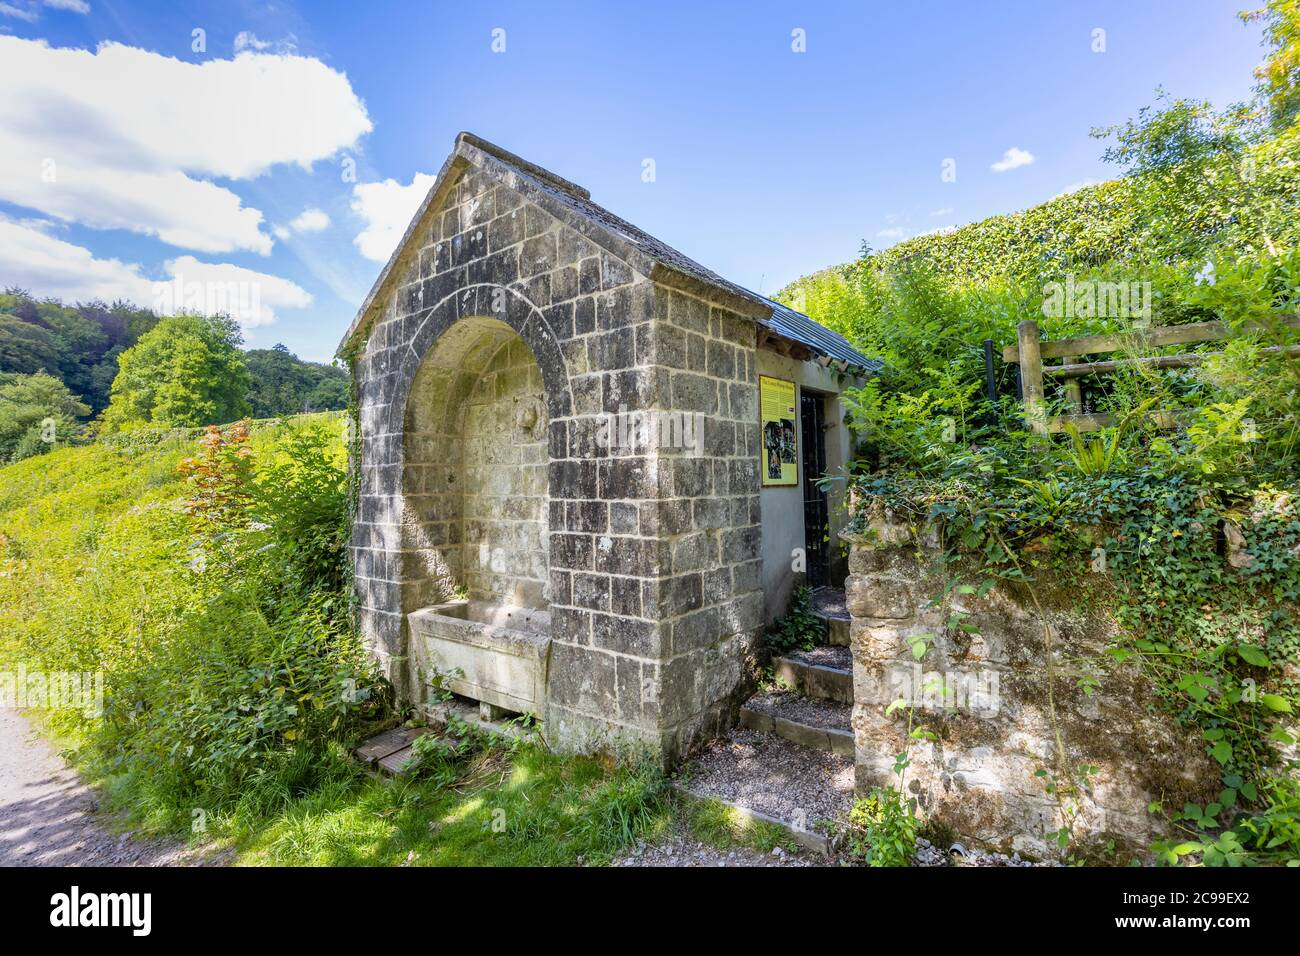 The restored Lower Pump House in Stourton, a small village near Stourhead, Somerset, south-west England Stock Photo